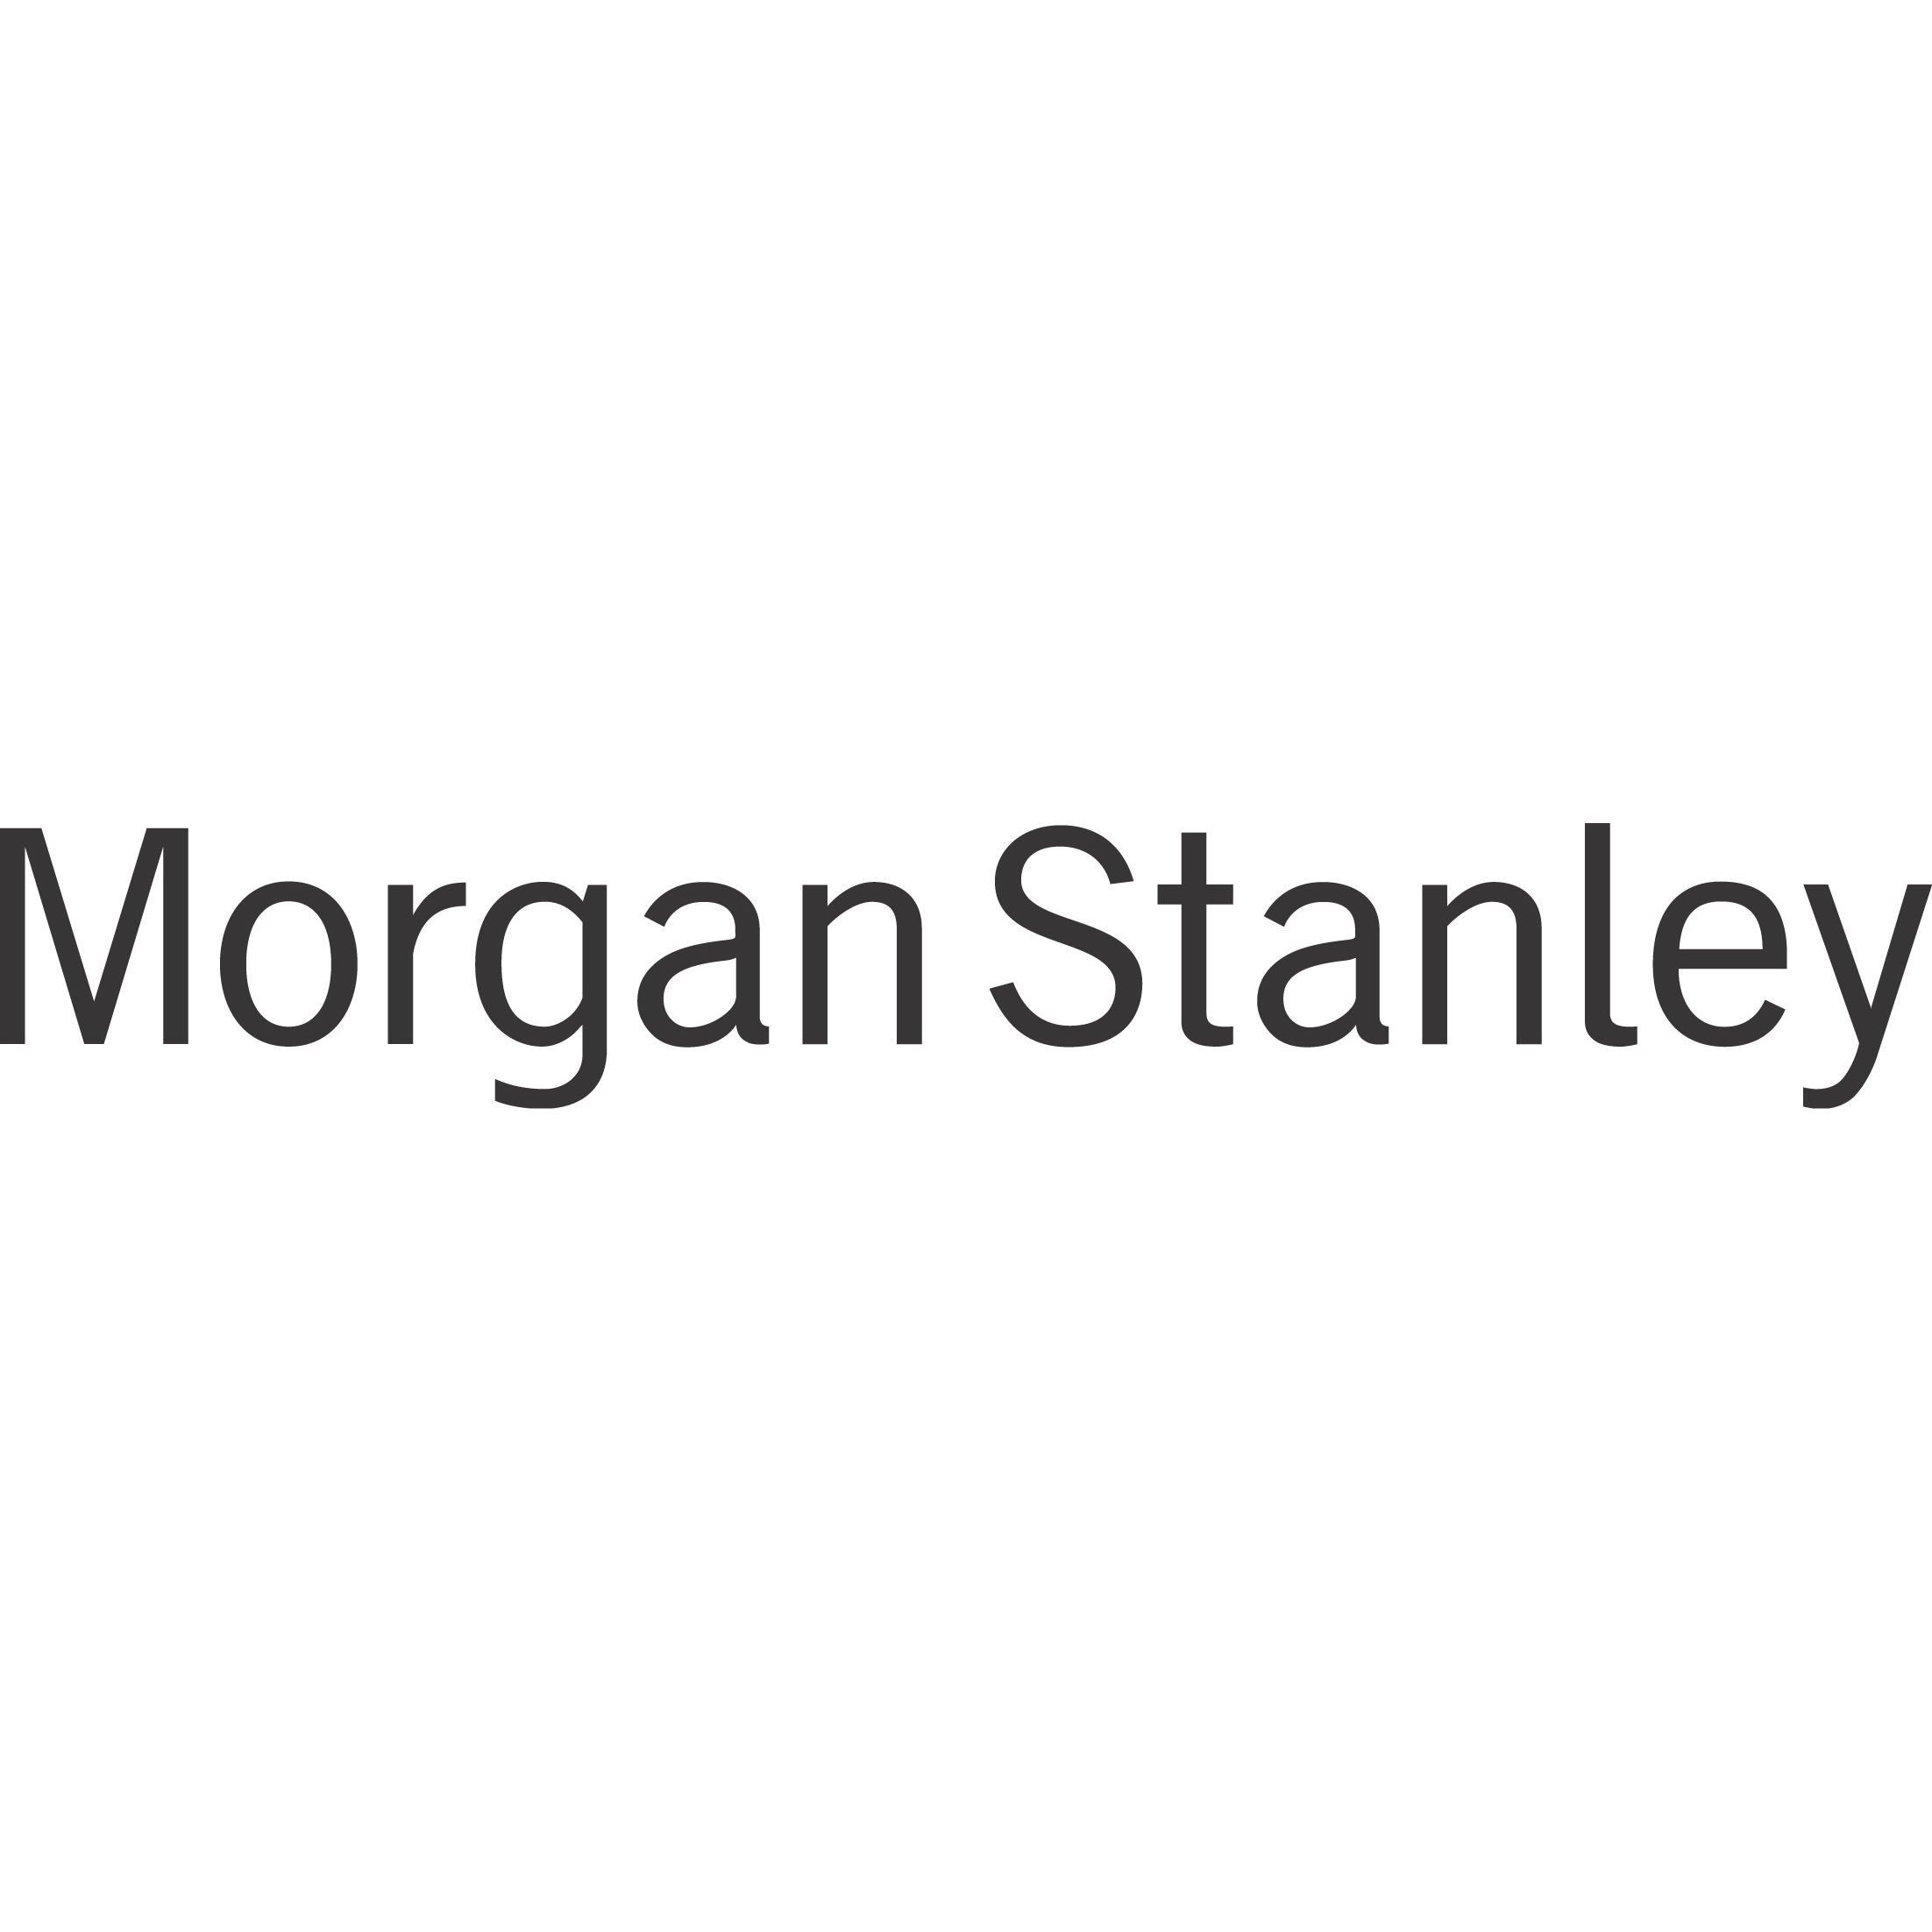 David P. Mazzotta - Morgan Stanley | Financial Advisor in Irvine,California